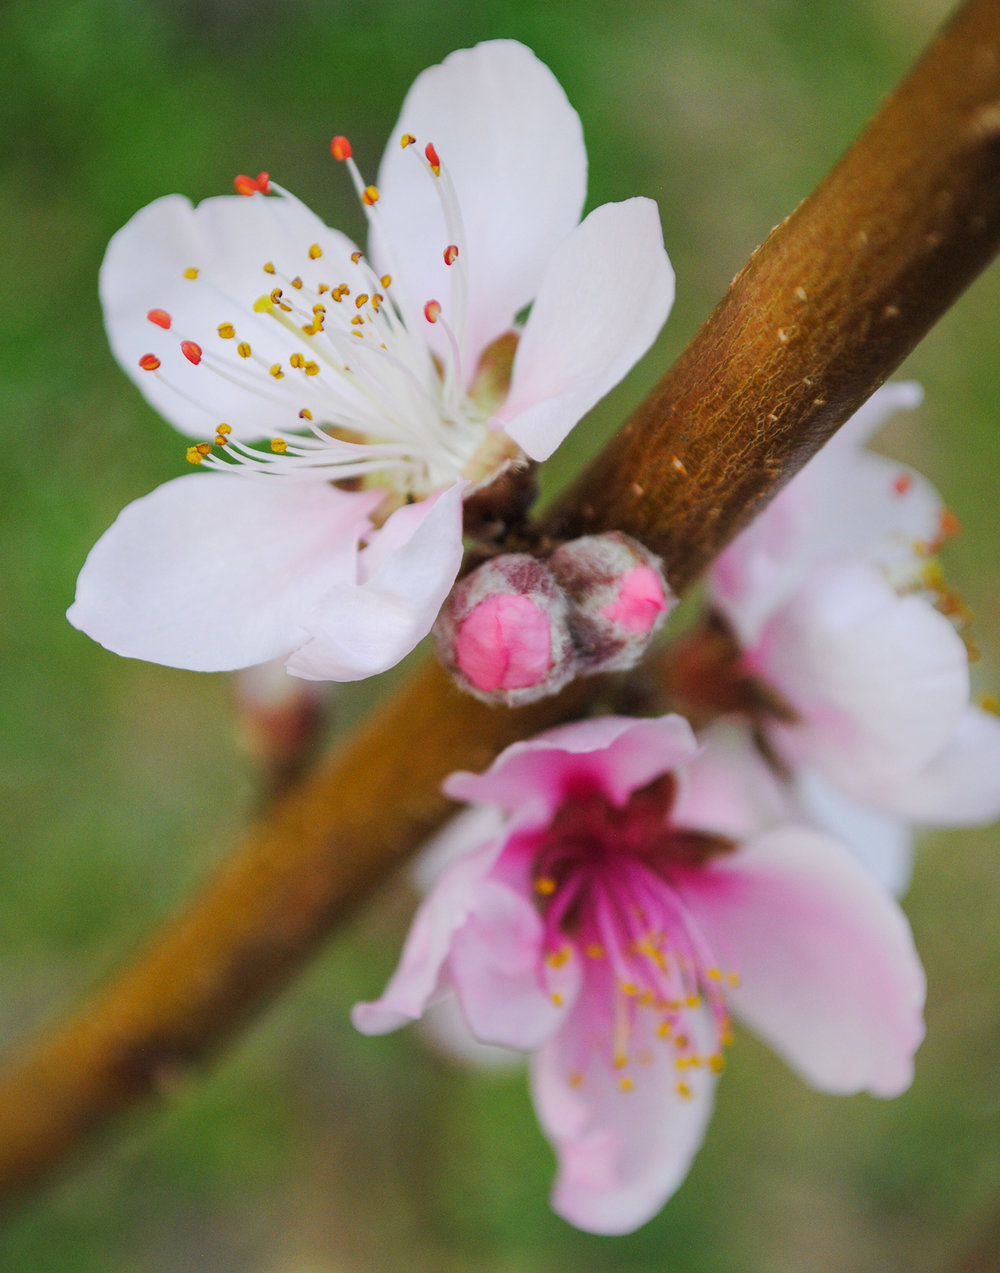 Present, past, and future flowers of 'Flordaking' peach